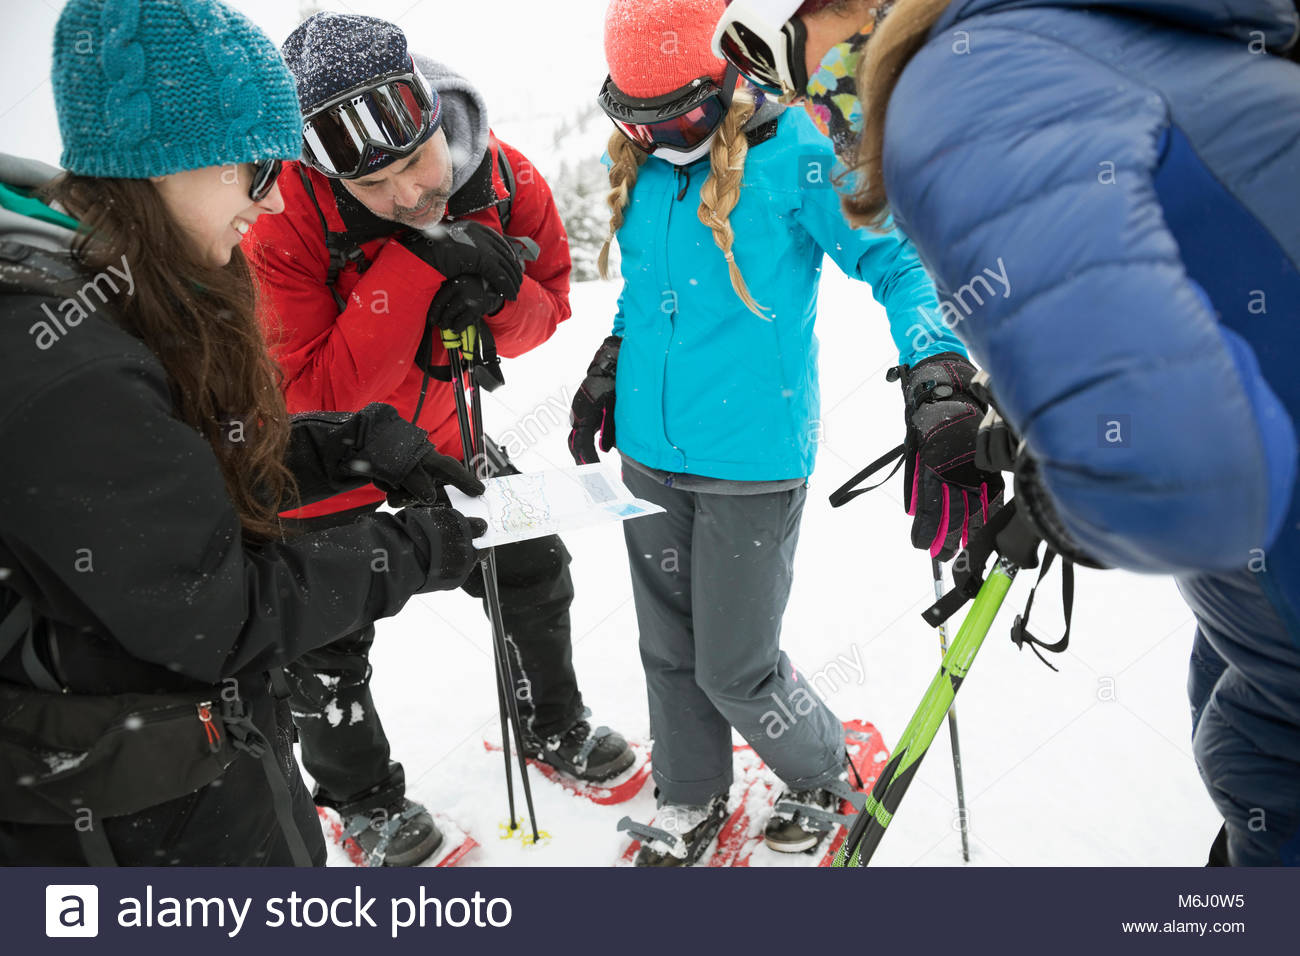 Family snowshoeing, checking map - Stock Image